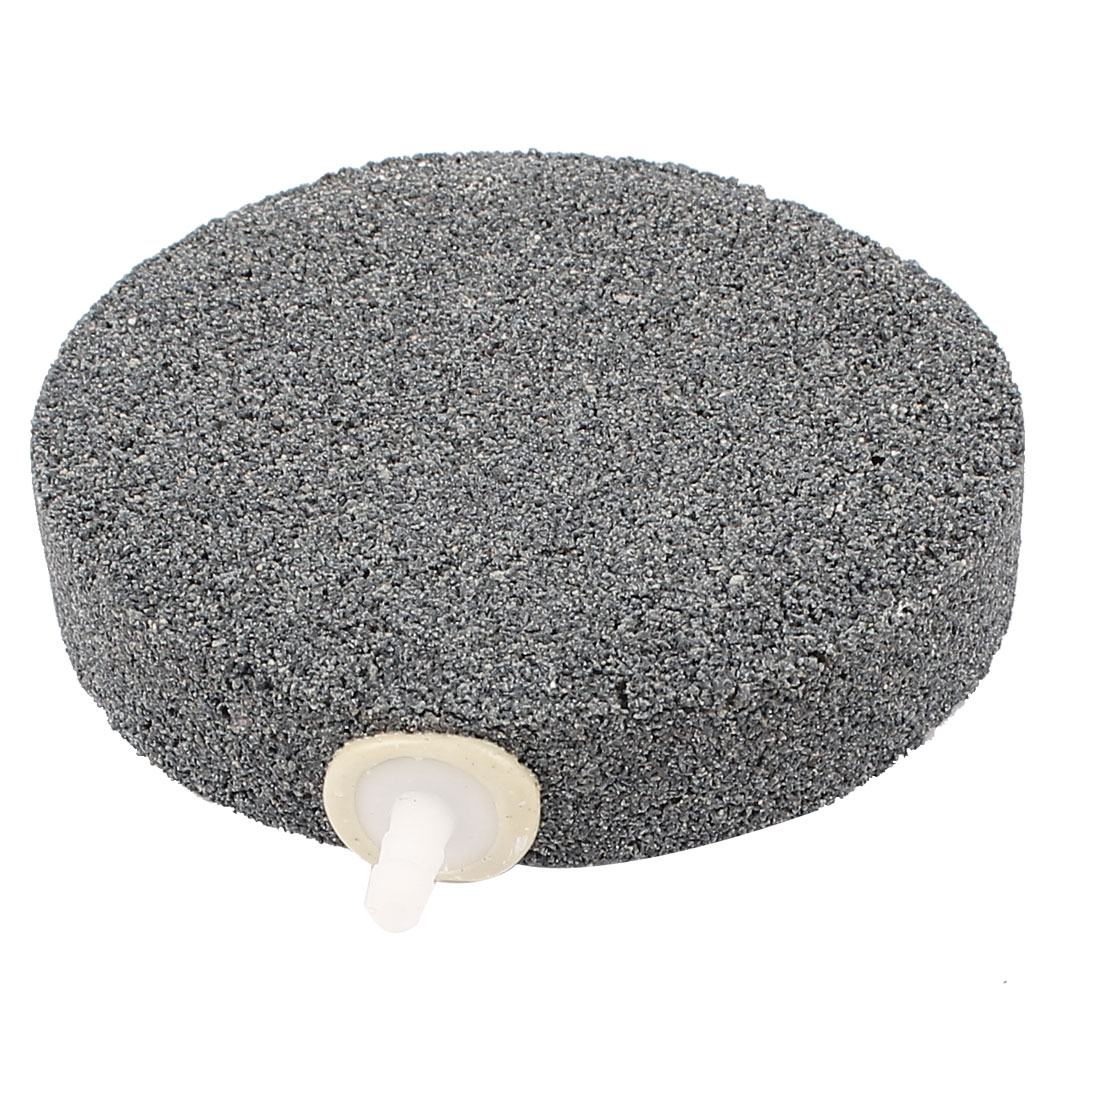 "Aquarium Fish Tank Round Diffuser Oxygen Bubble Air Stone 3.8"" Diameter Gray"